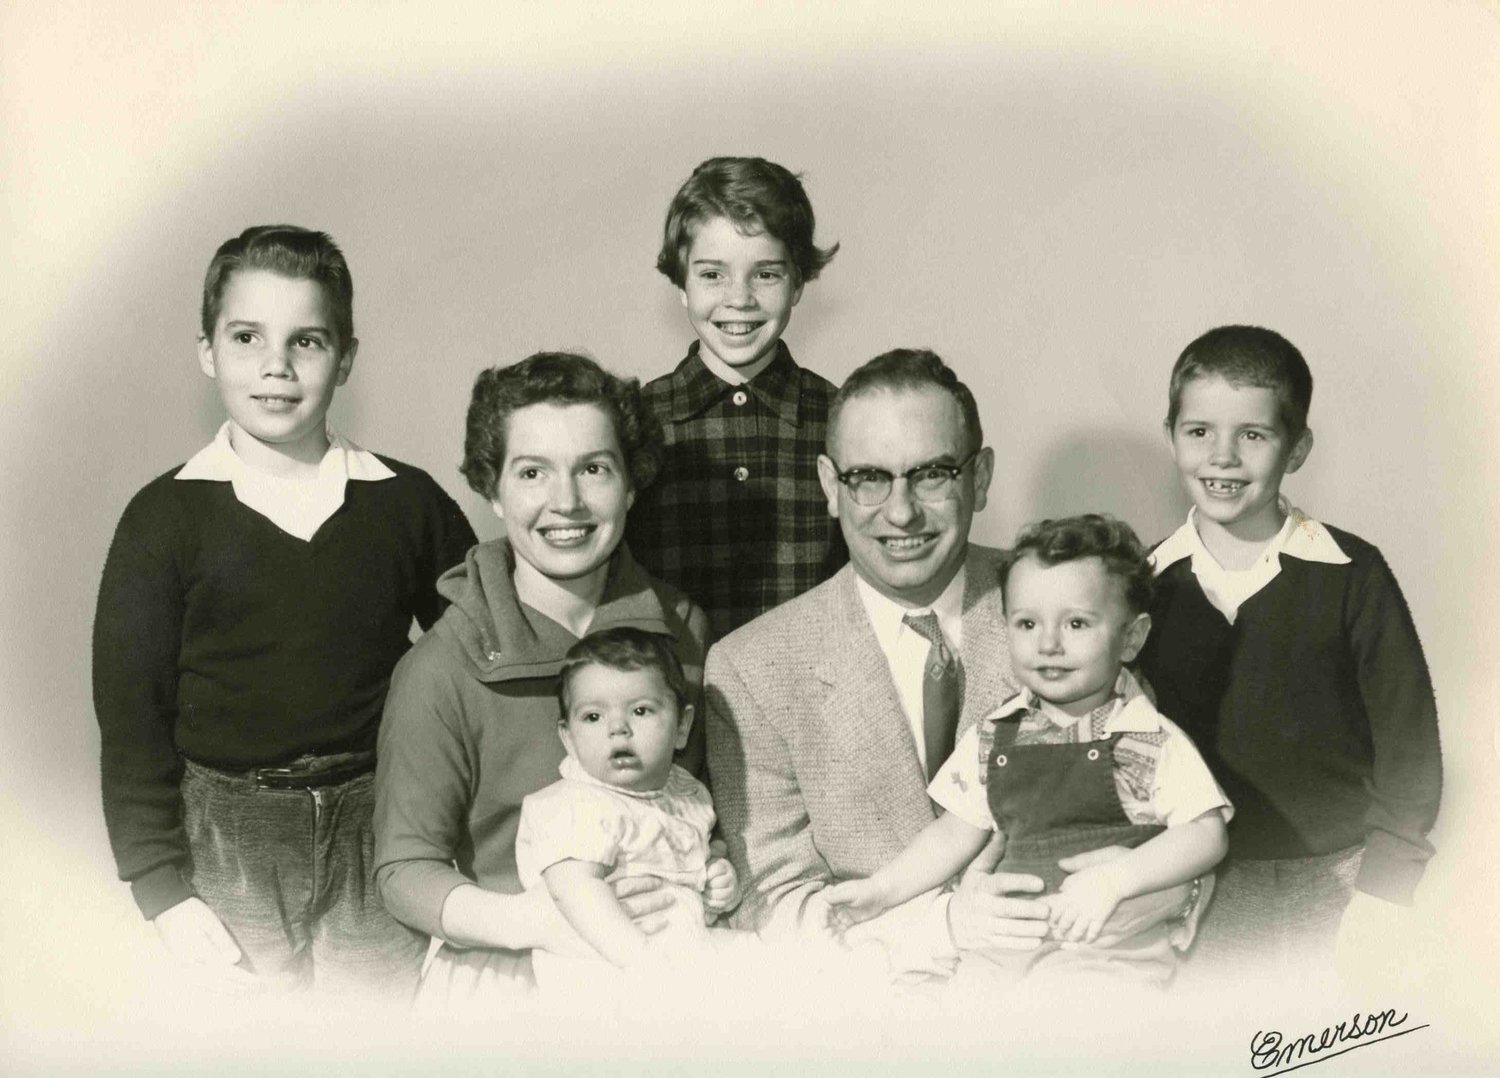 Bill Crary (far left) with the Danner family - William